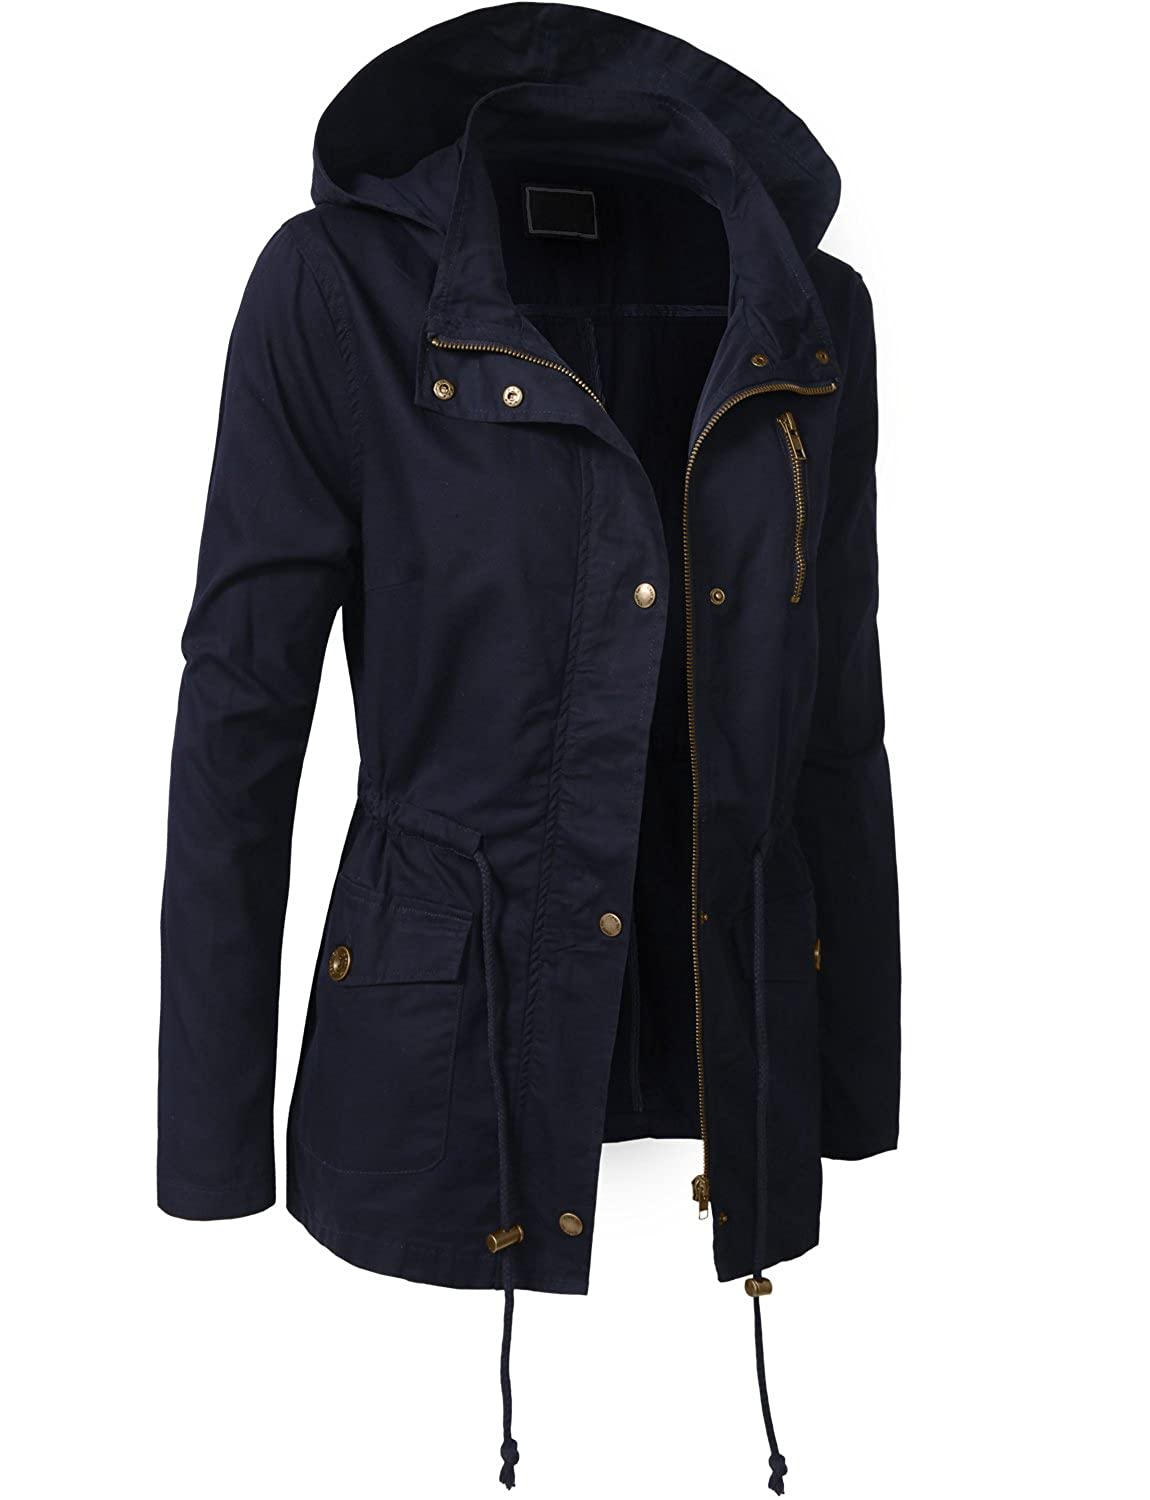 3db8dd263c36a NE PEOPLE Womens Military Anorak Jacket in Various Styles NEWJ10 larger  image